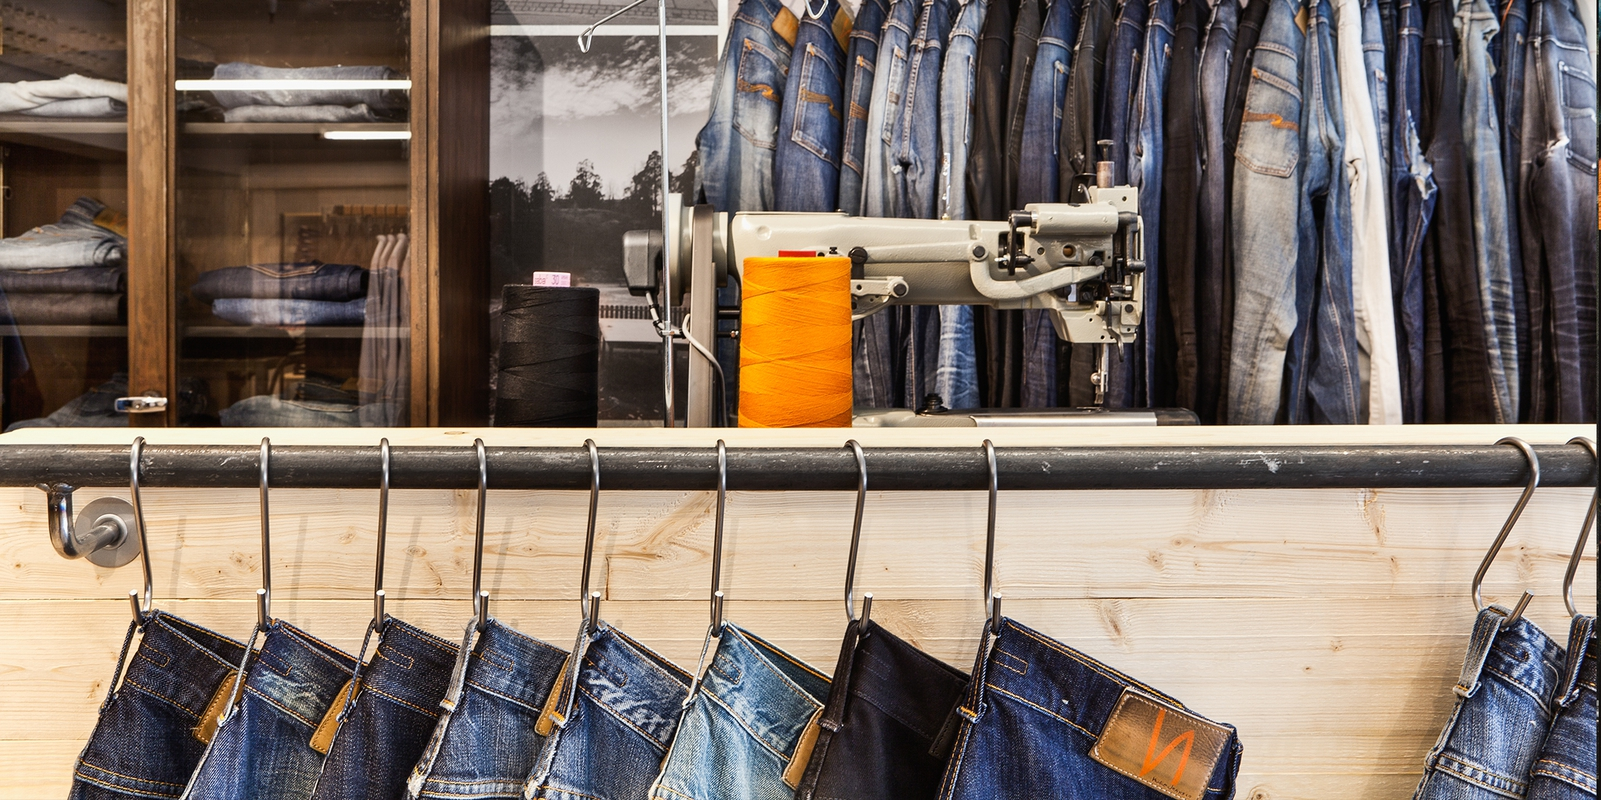 Nudie Jeans Repair Shop Vallgatan - Nudie Jeans